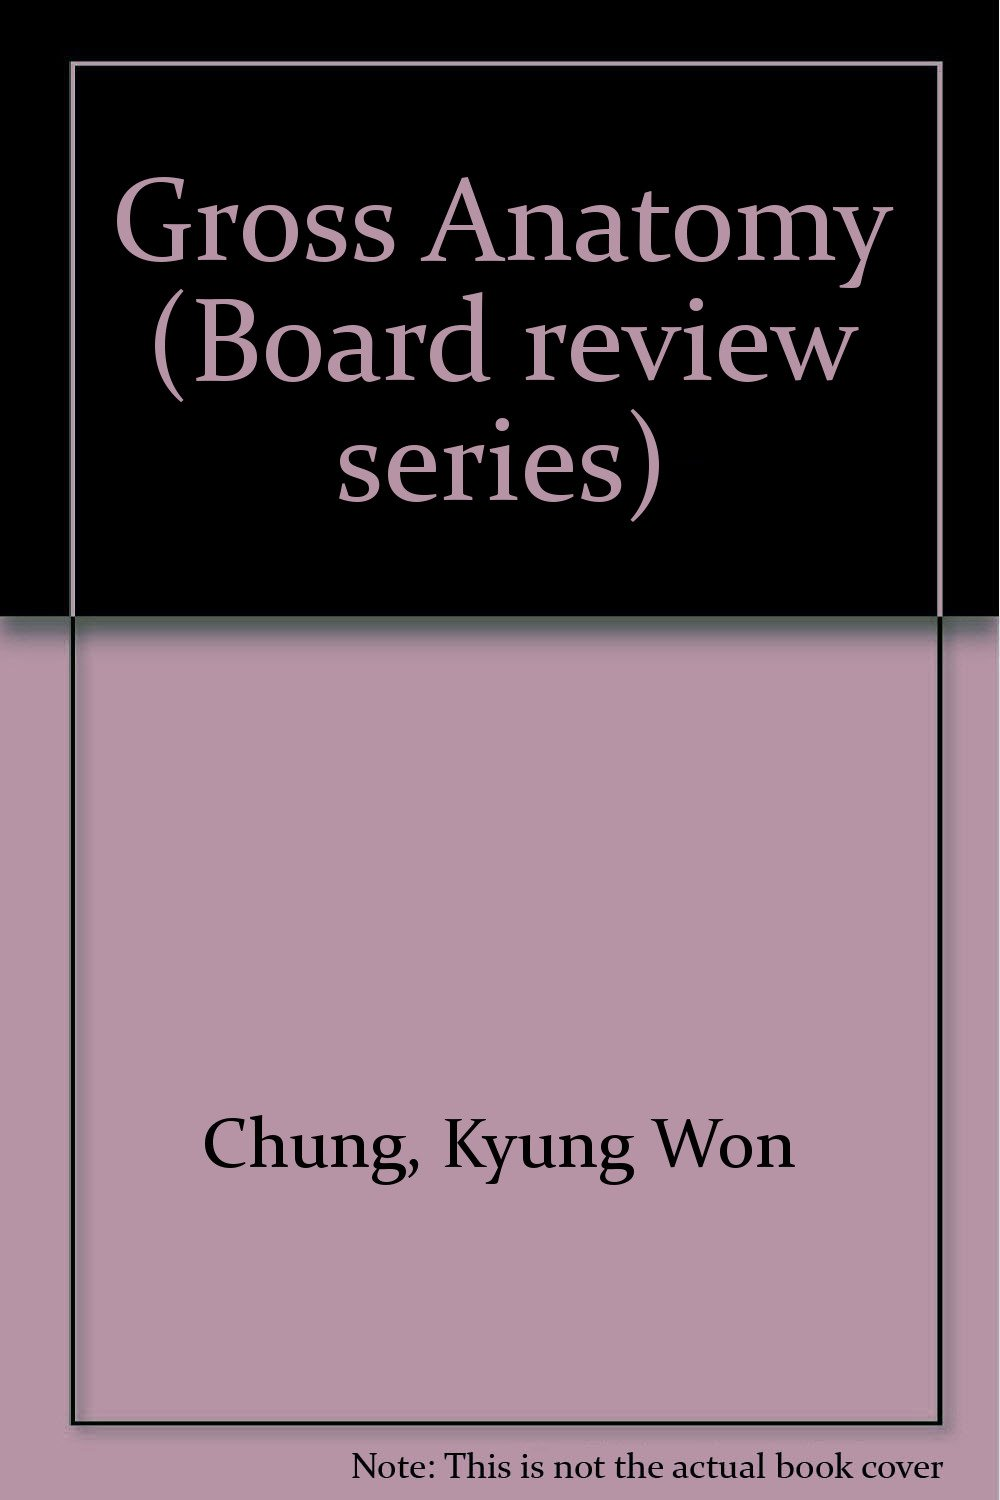 Gross Anatomy Board Review Series Kyung Won Chung 9780683015645